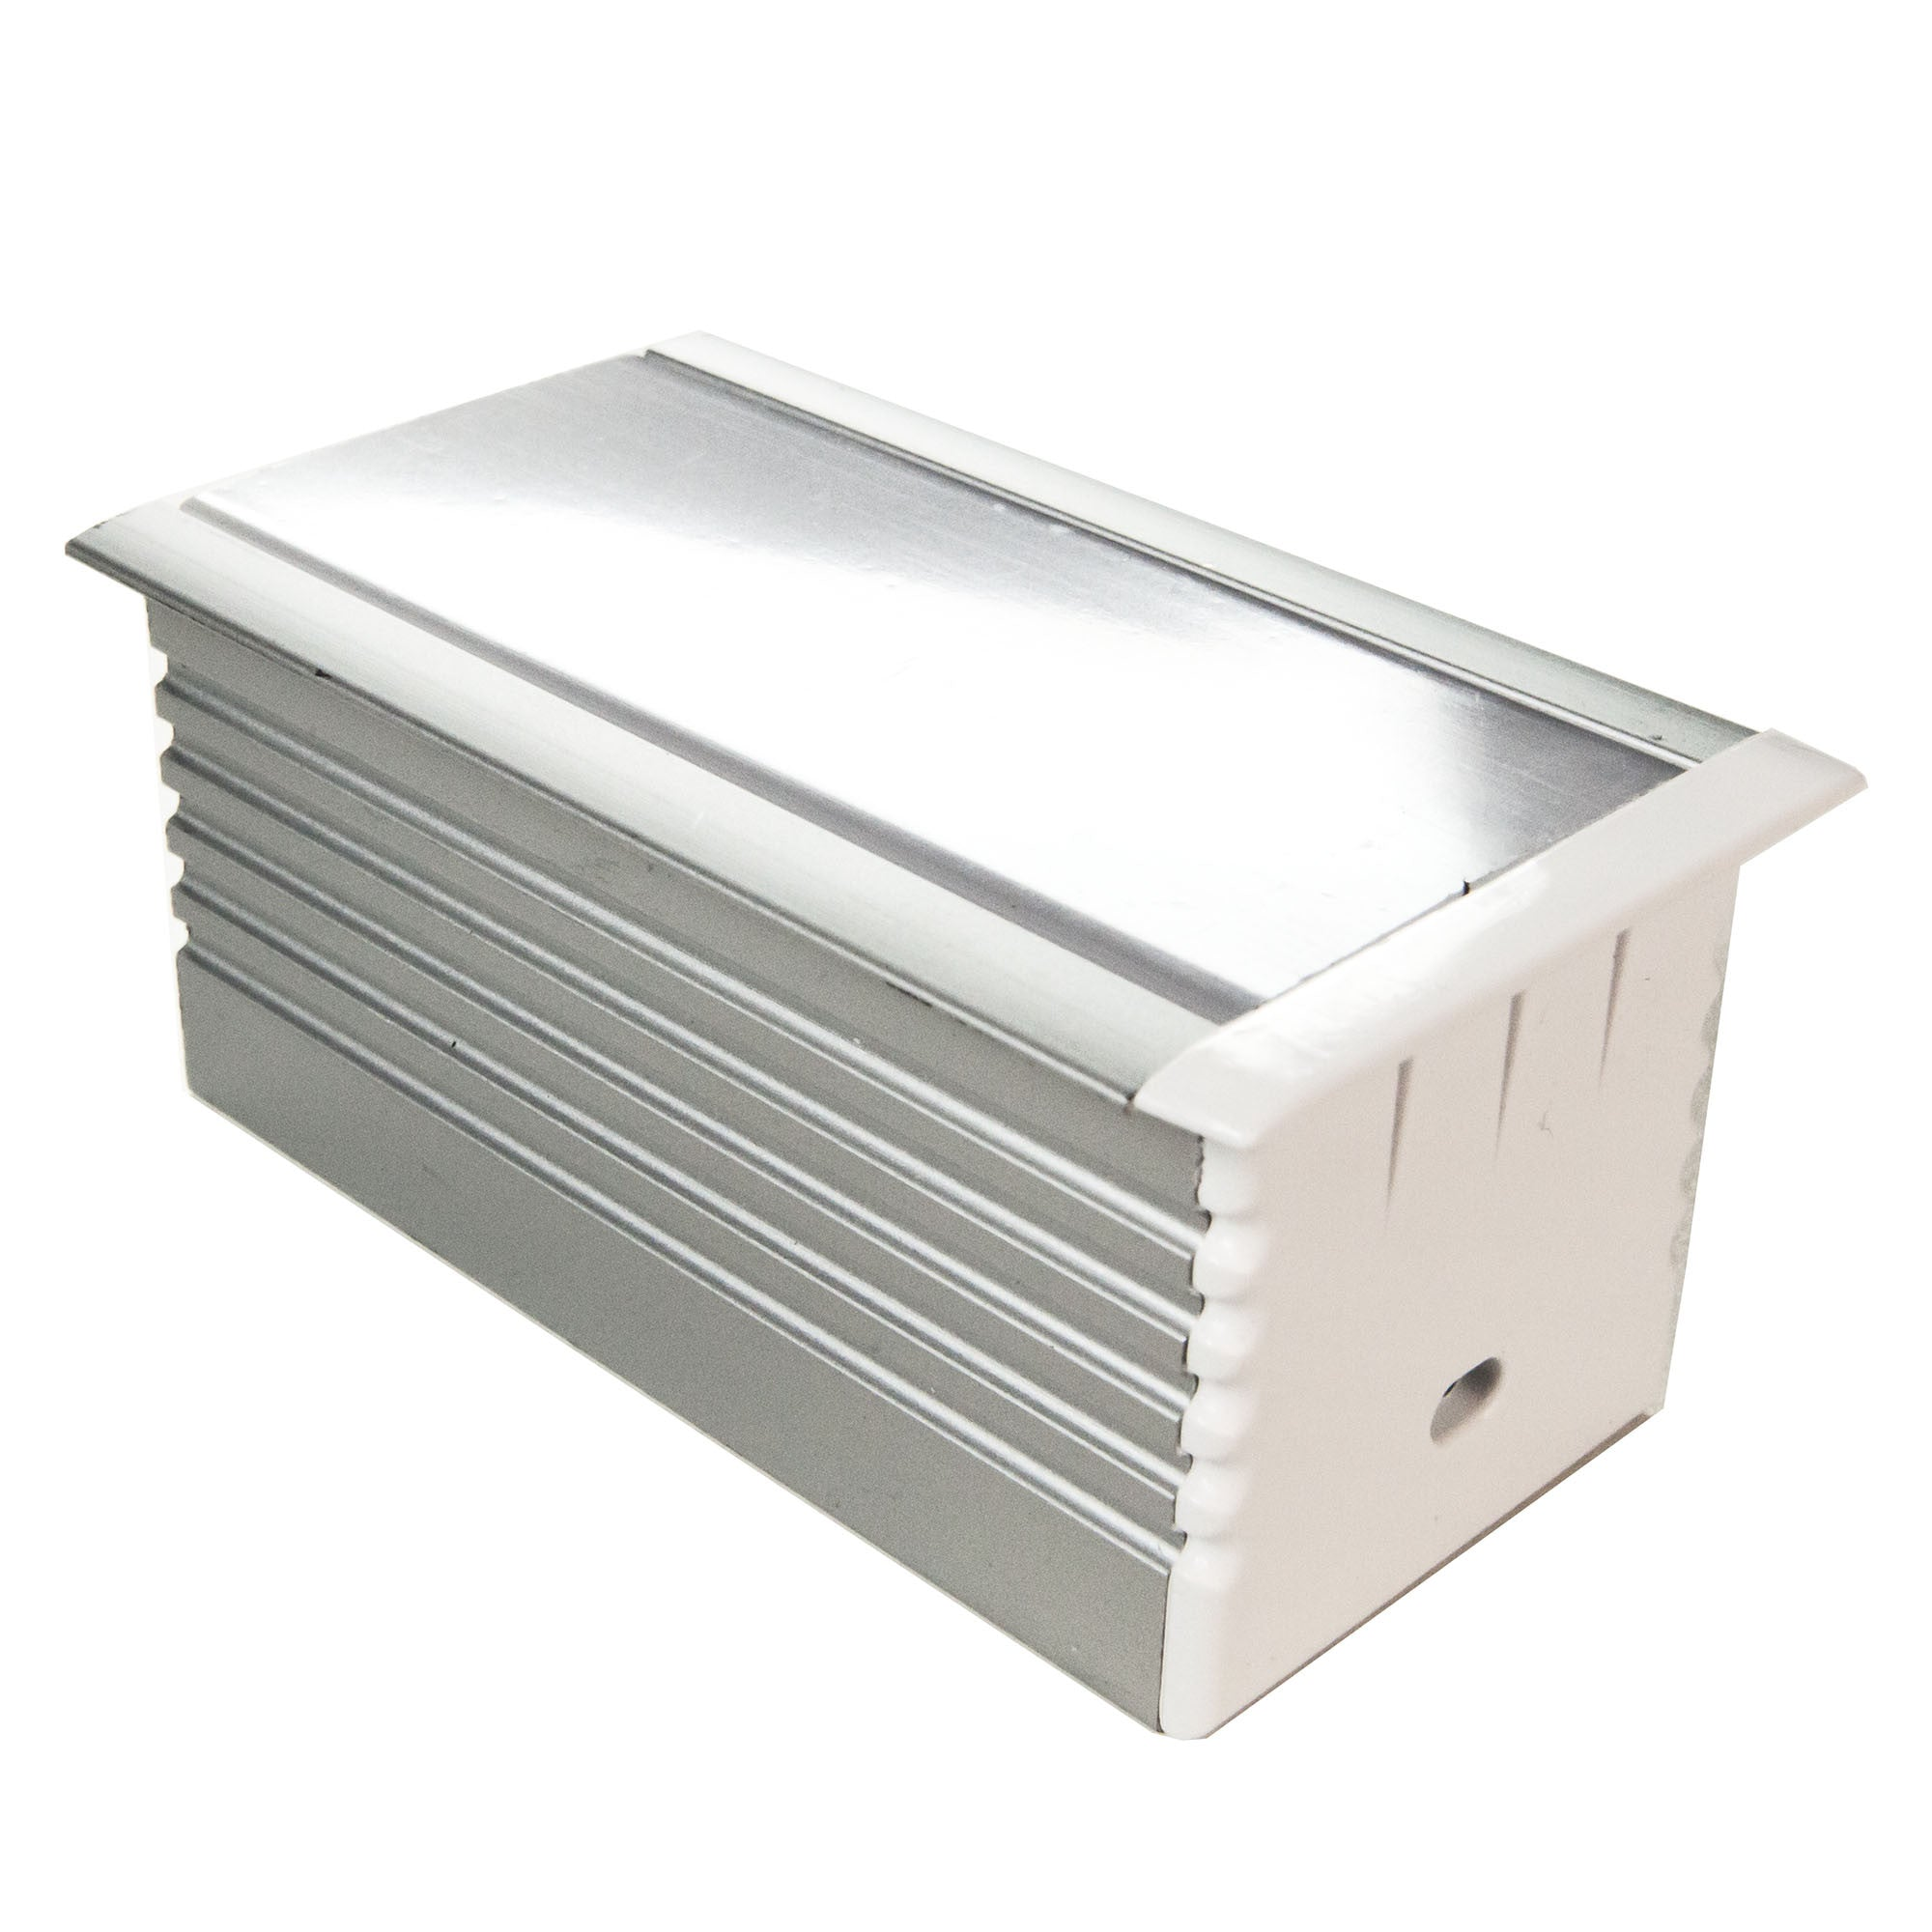 Aluminum Channel - MOSS-ALM-3535B - Moss LED